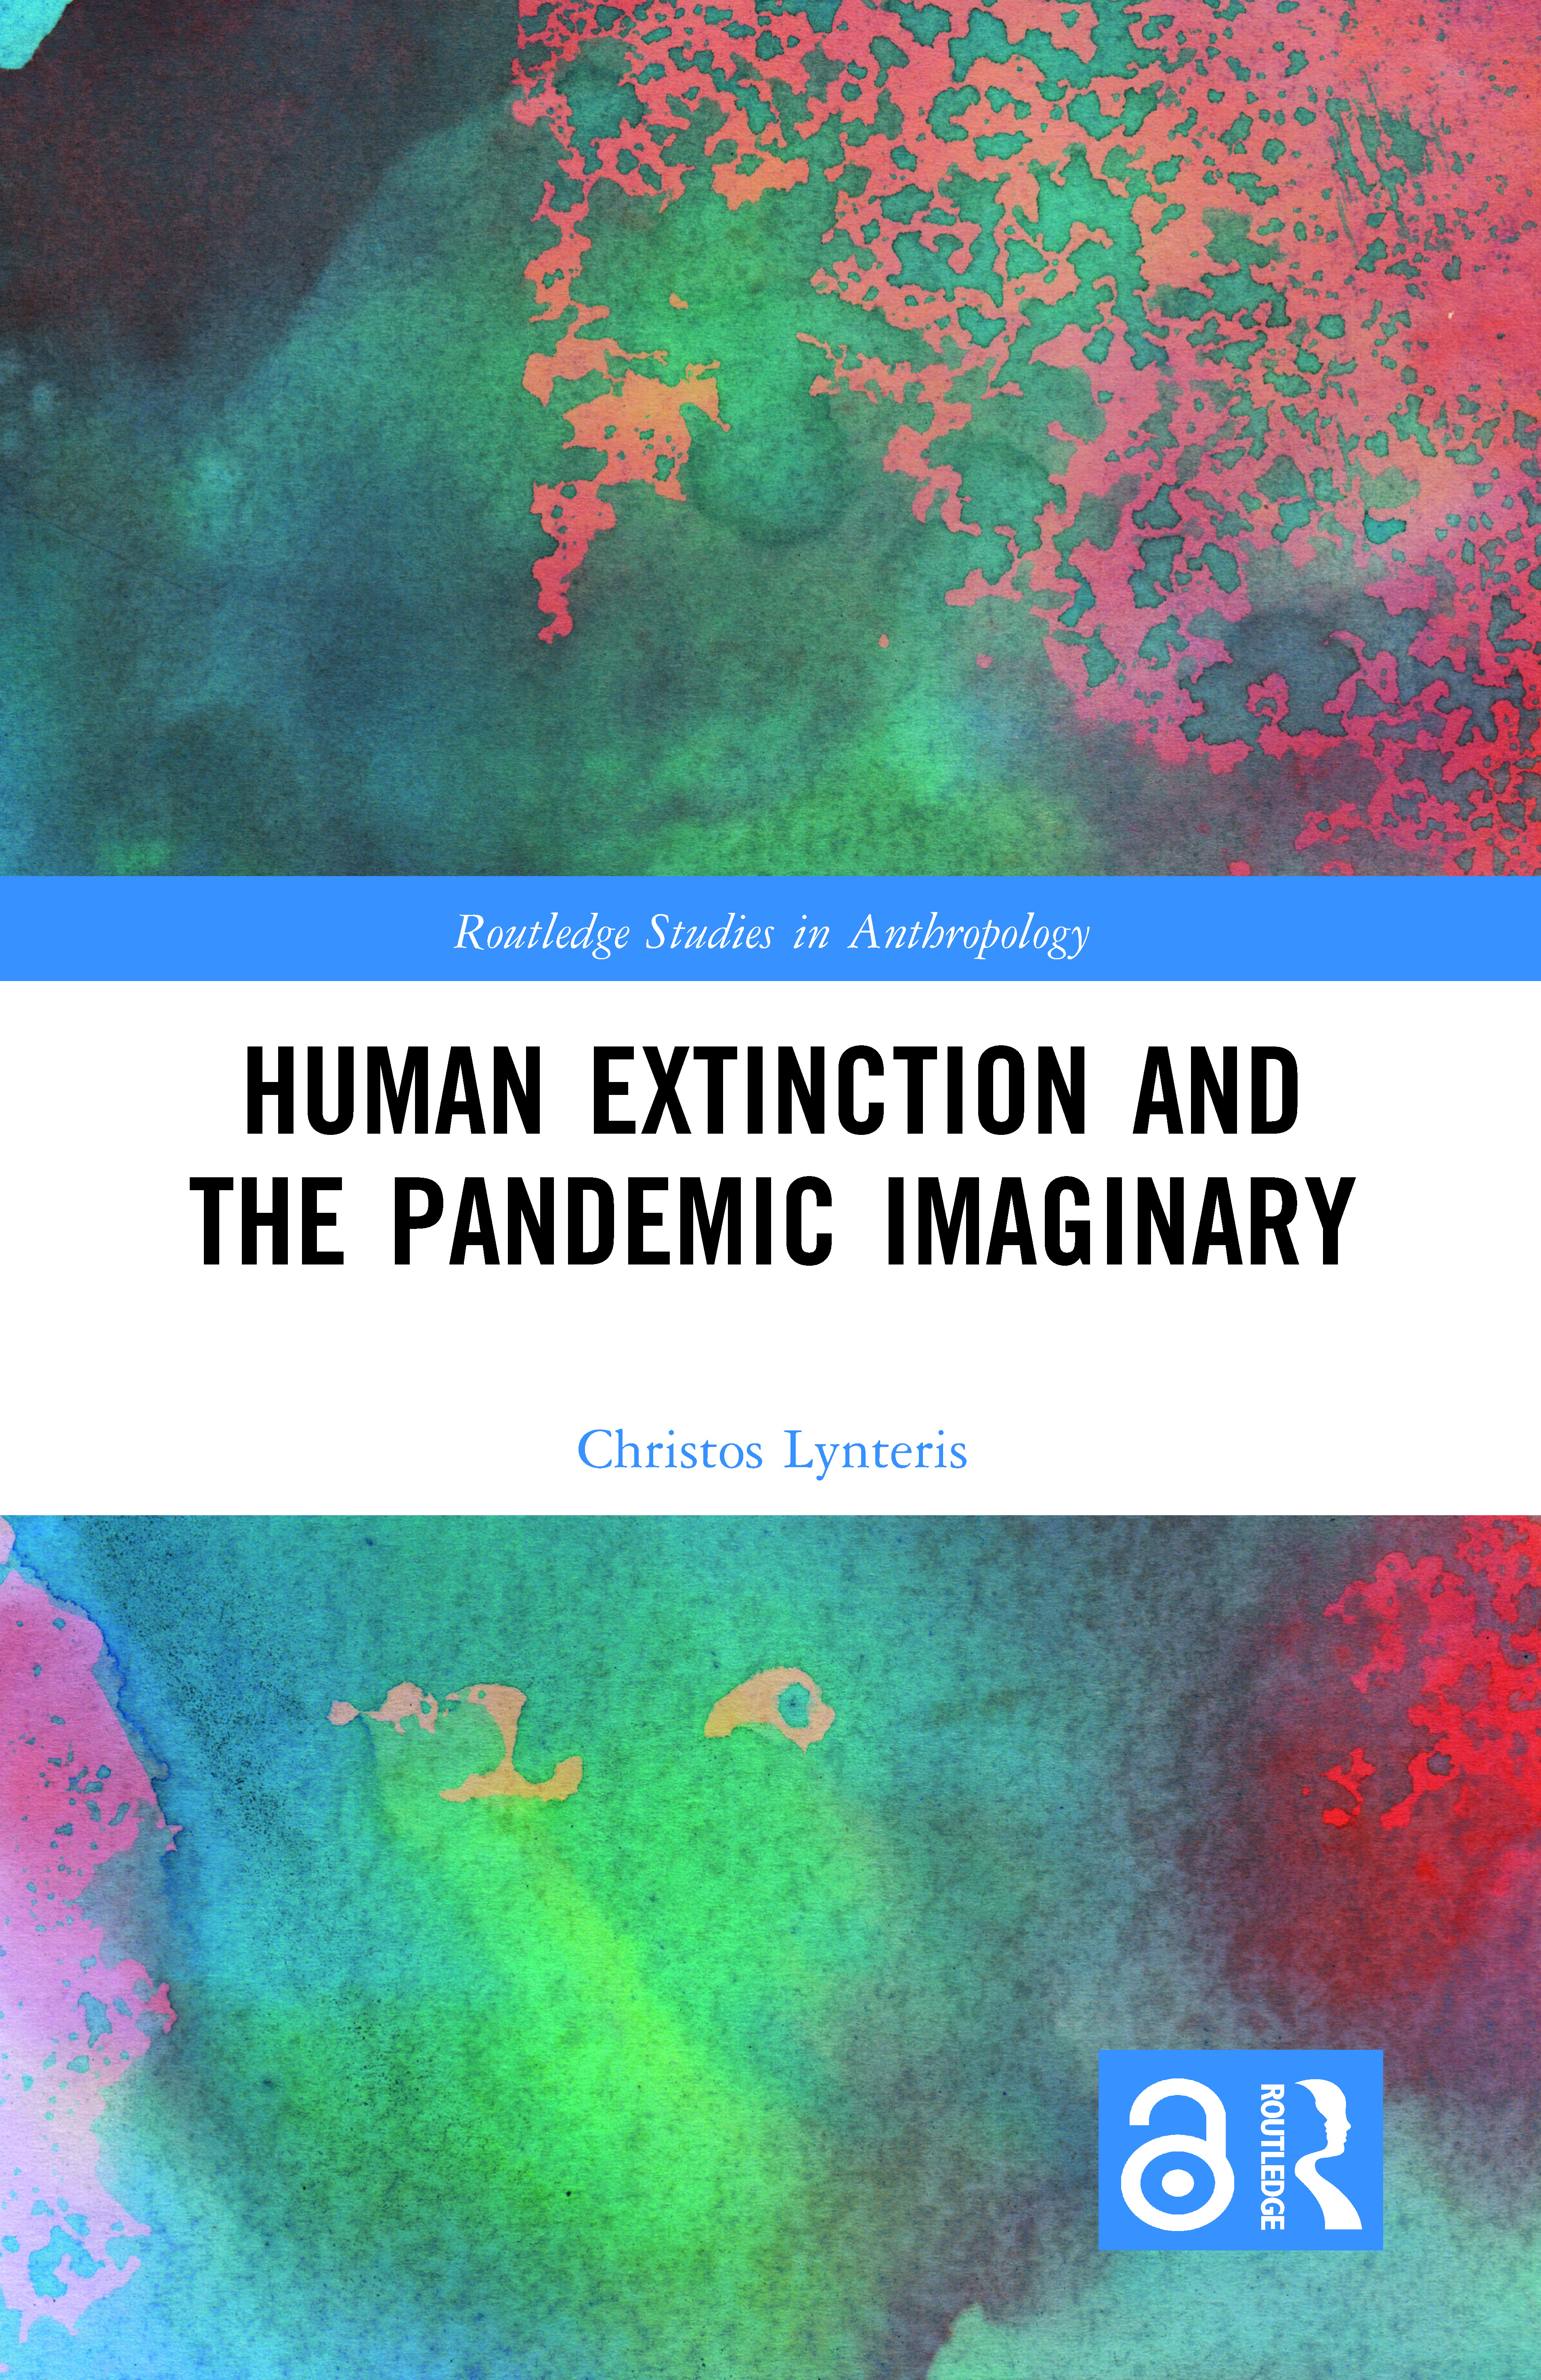 Human Extinction and the Pandemic Imaginary